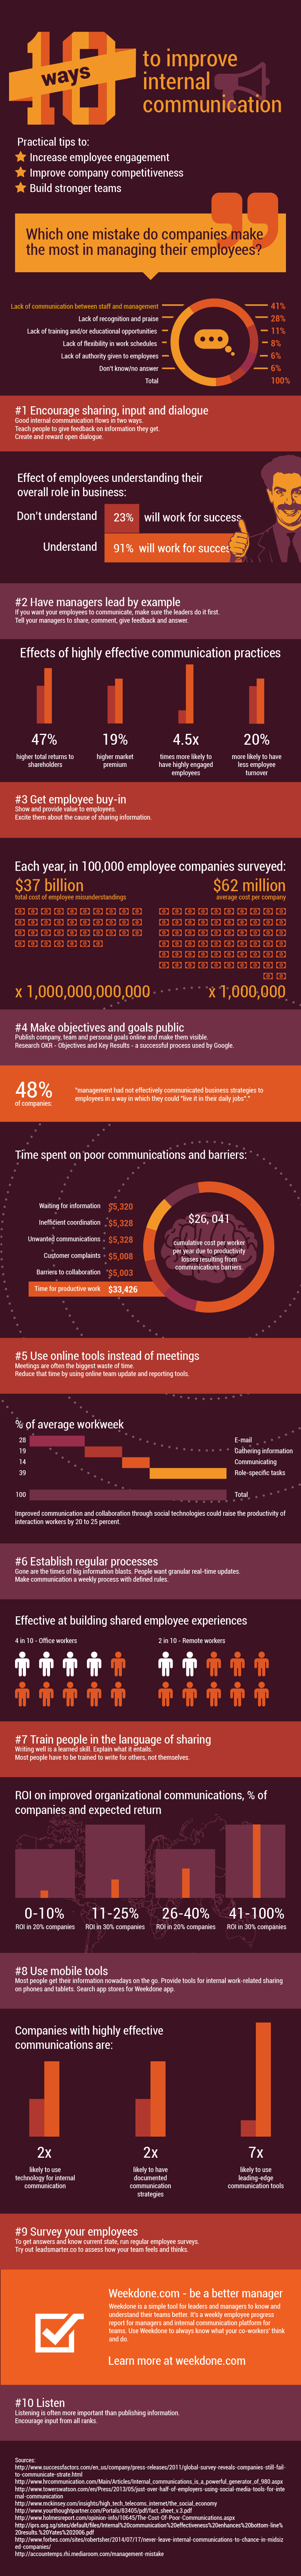 10_ways_to_improve_internal_communication-infographic-tips